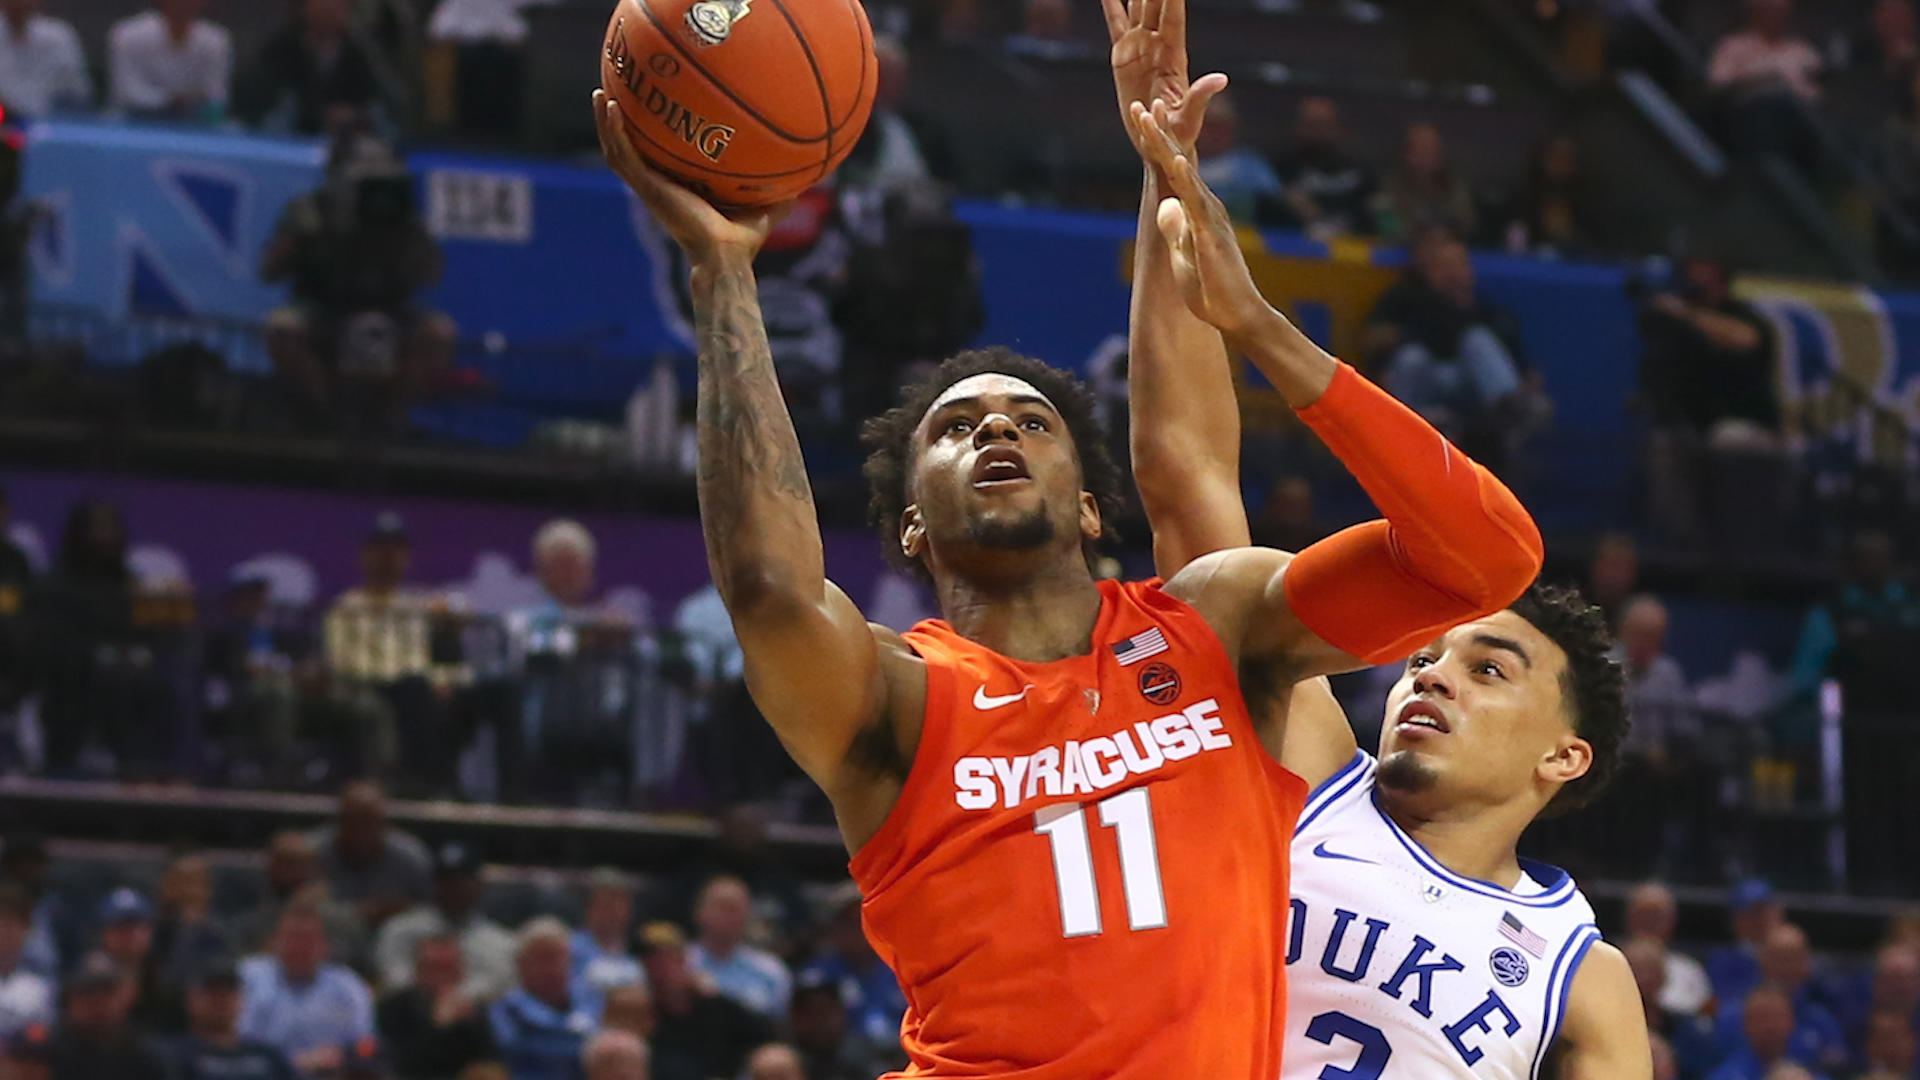 March Madness 2019: Syracuse vs. Baylor odds, picks, predictions from expert who's 15-3 on Orange, Bears games